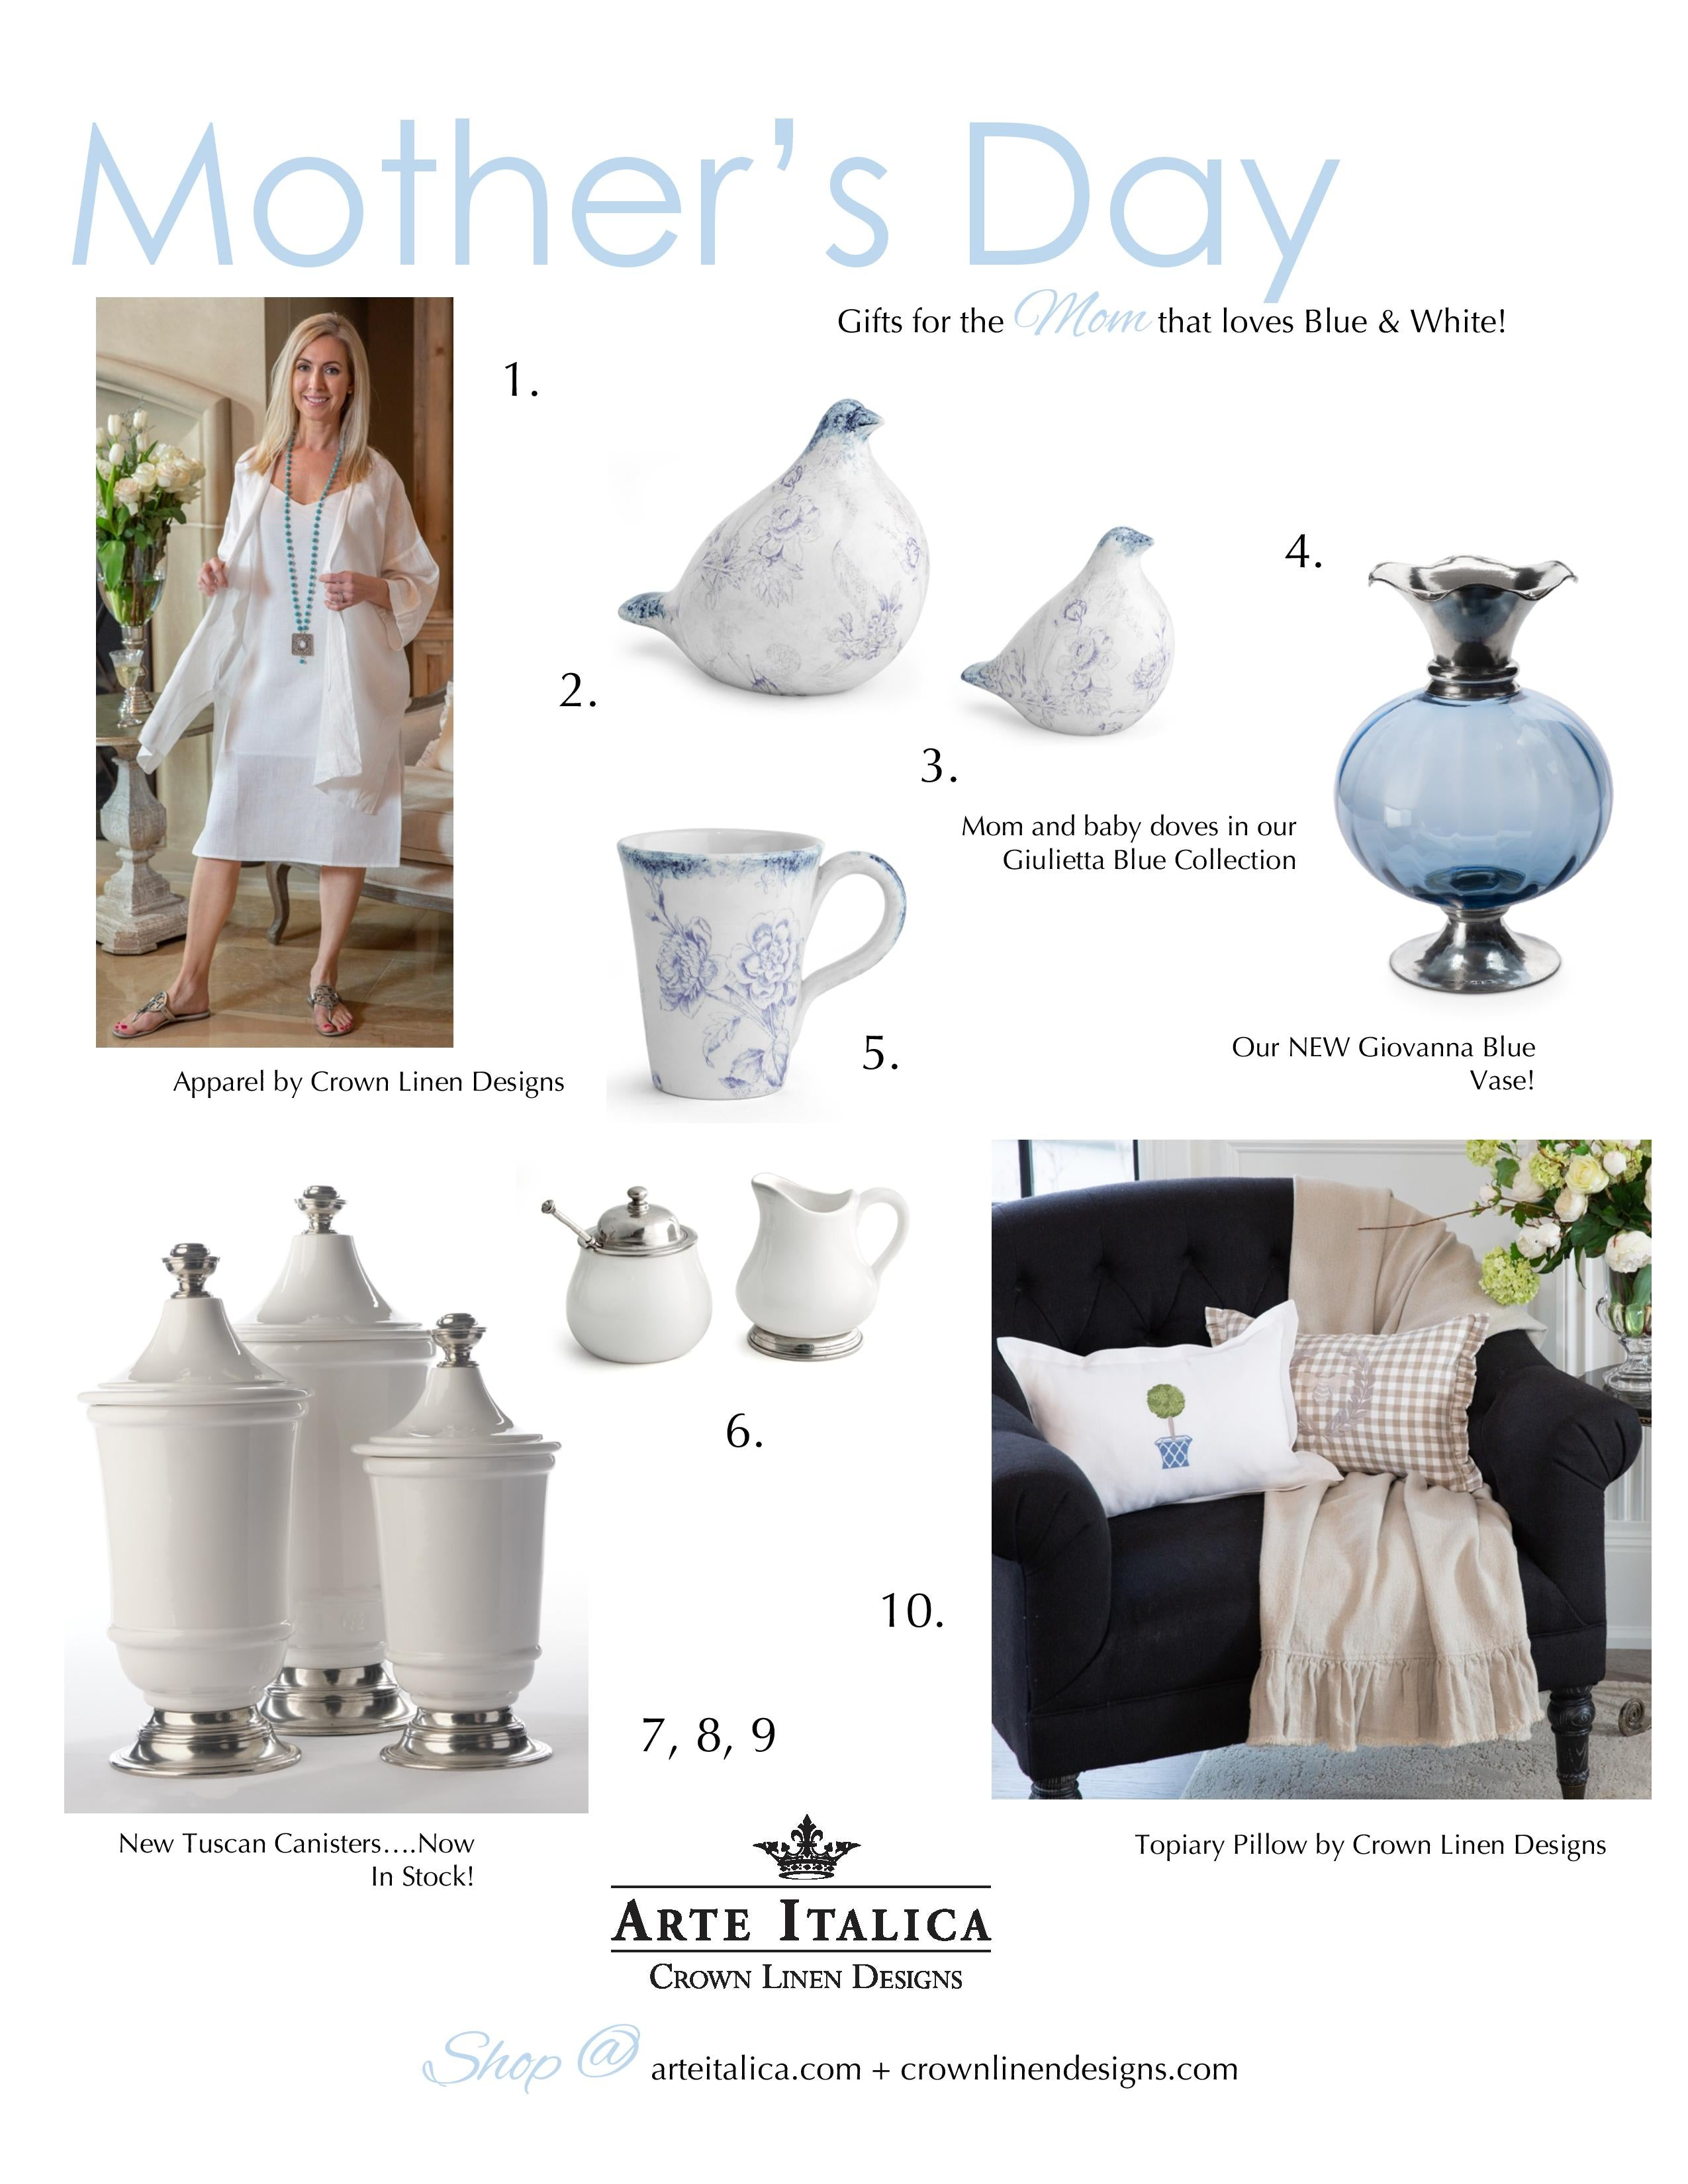 Crown Linen Designs Mother's Day Gift Guide 3